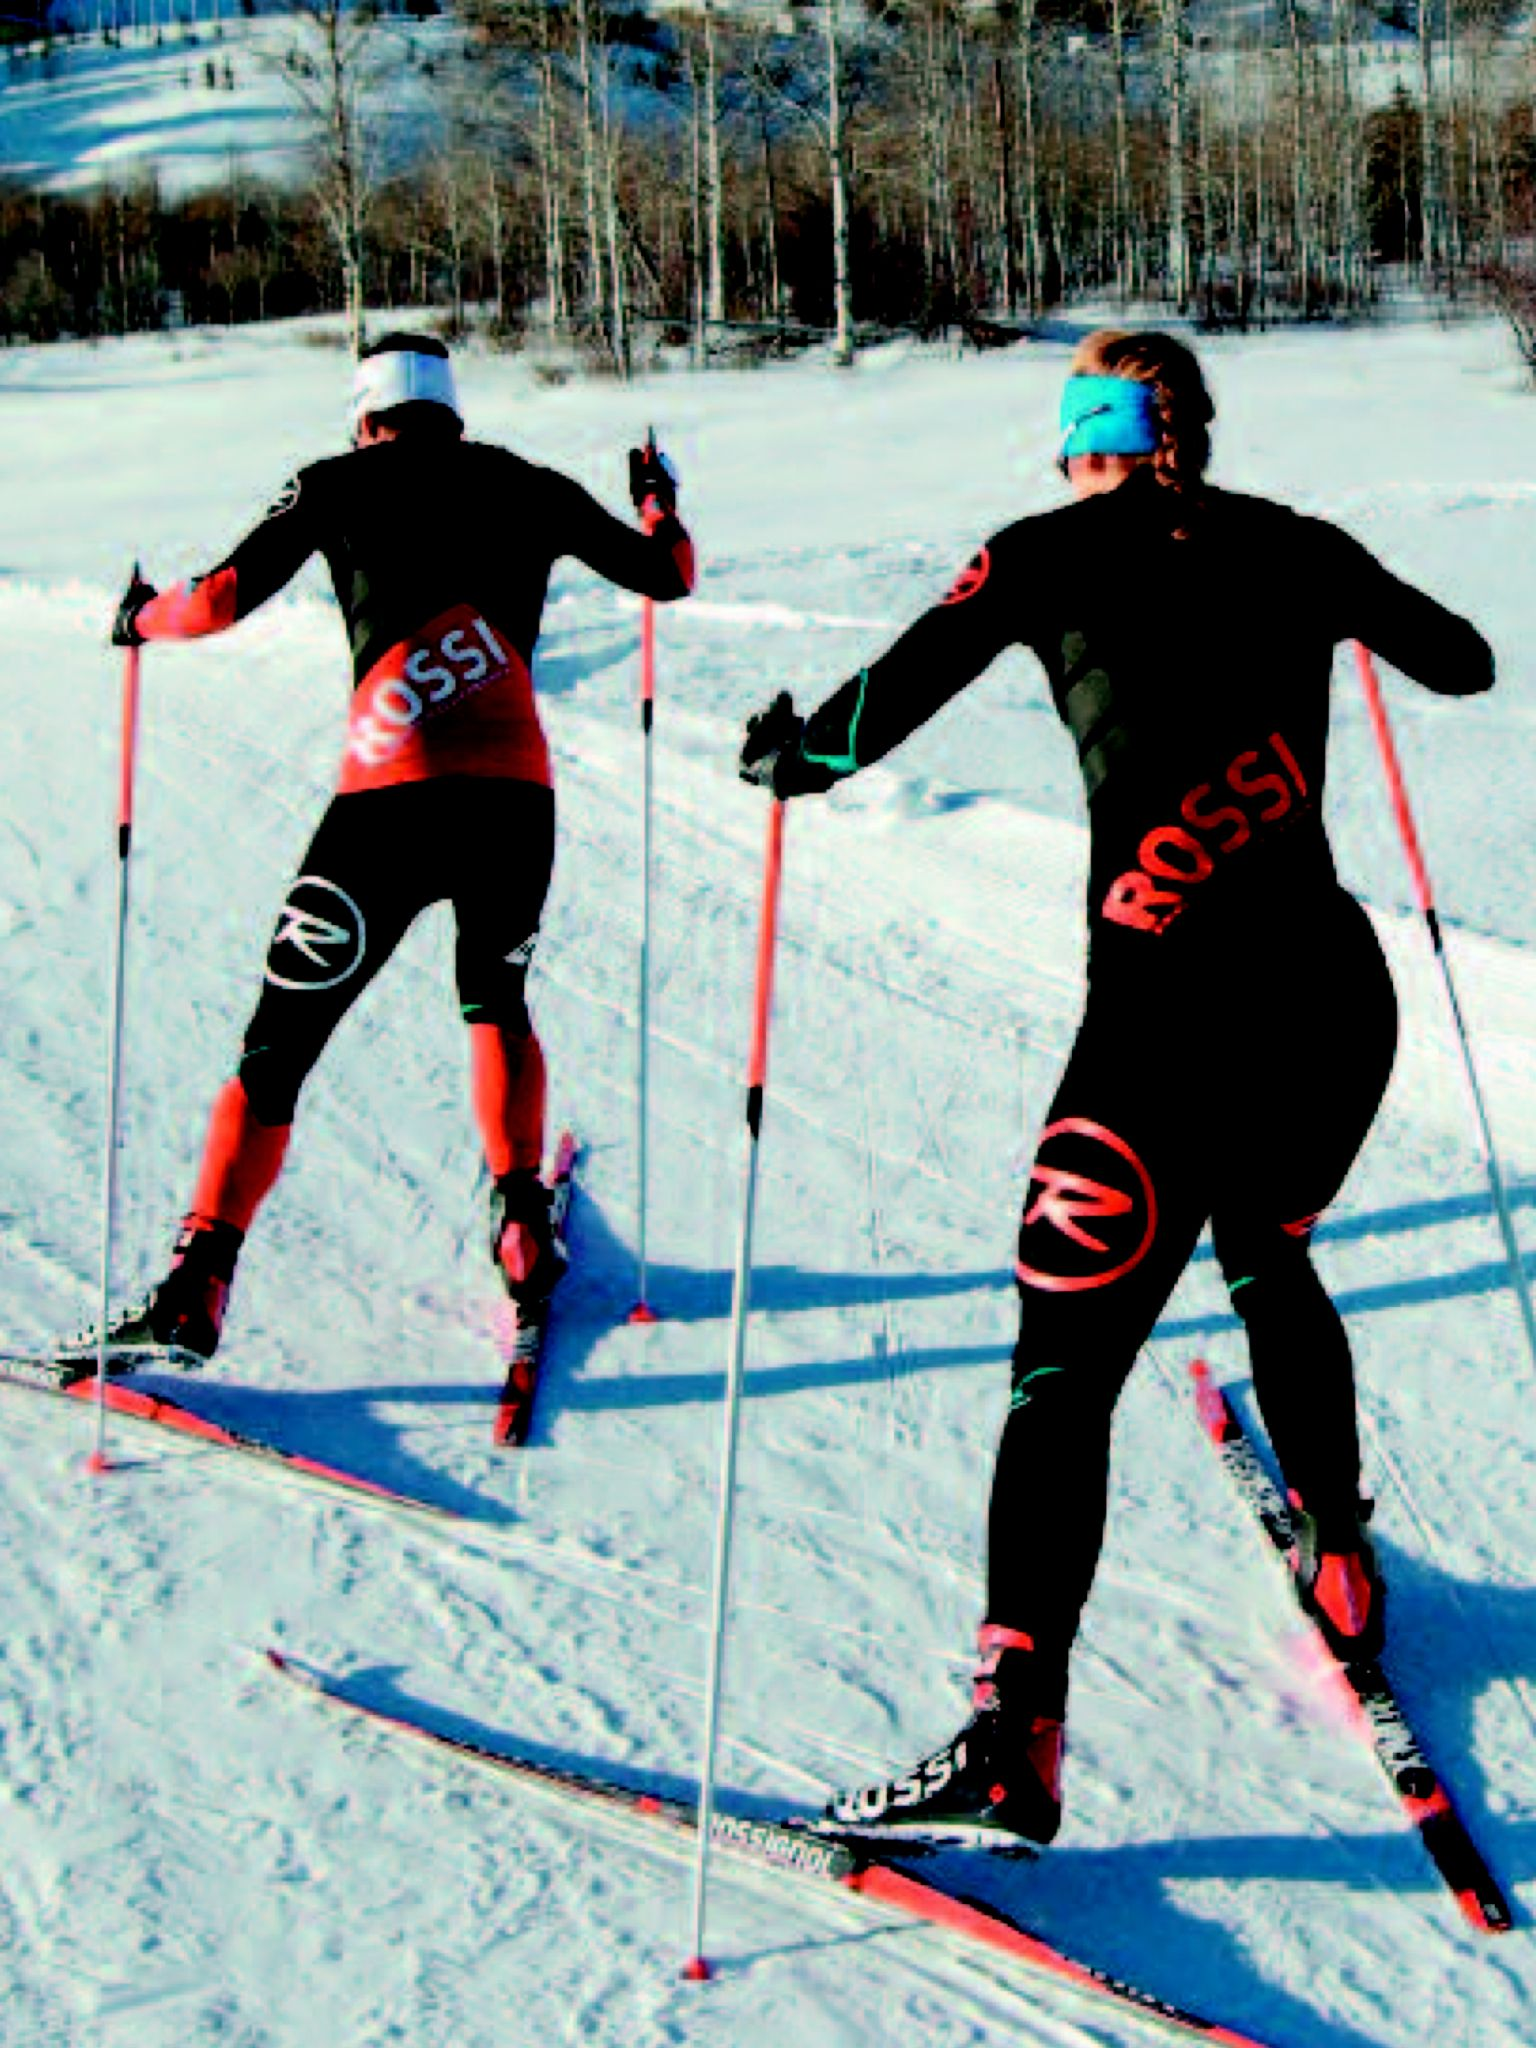 Check Out The Many Cross Country Ski Trails In The Willmarlakesarea Onlyinmn Ski Trails Cross Country Skiing Lake